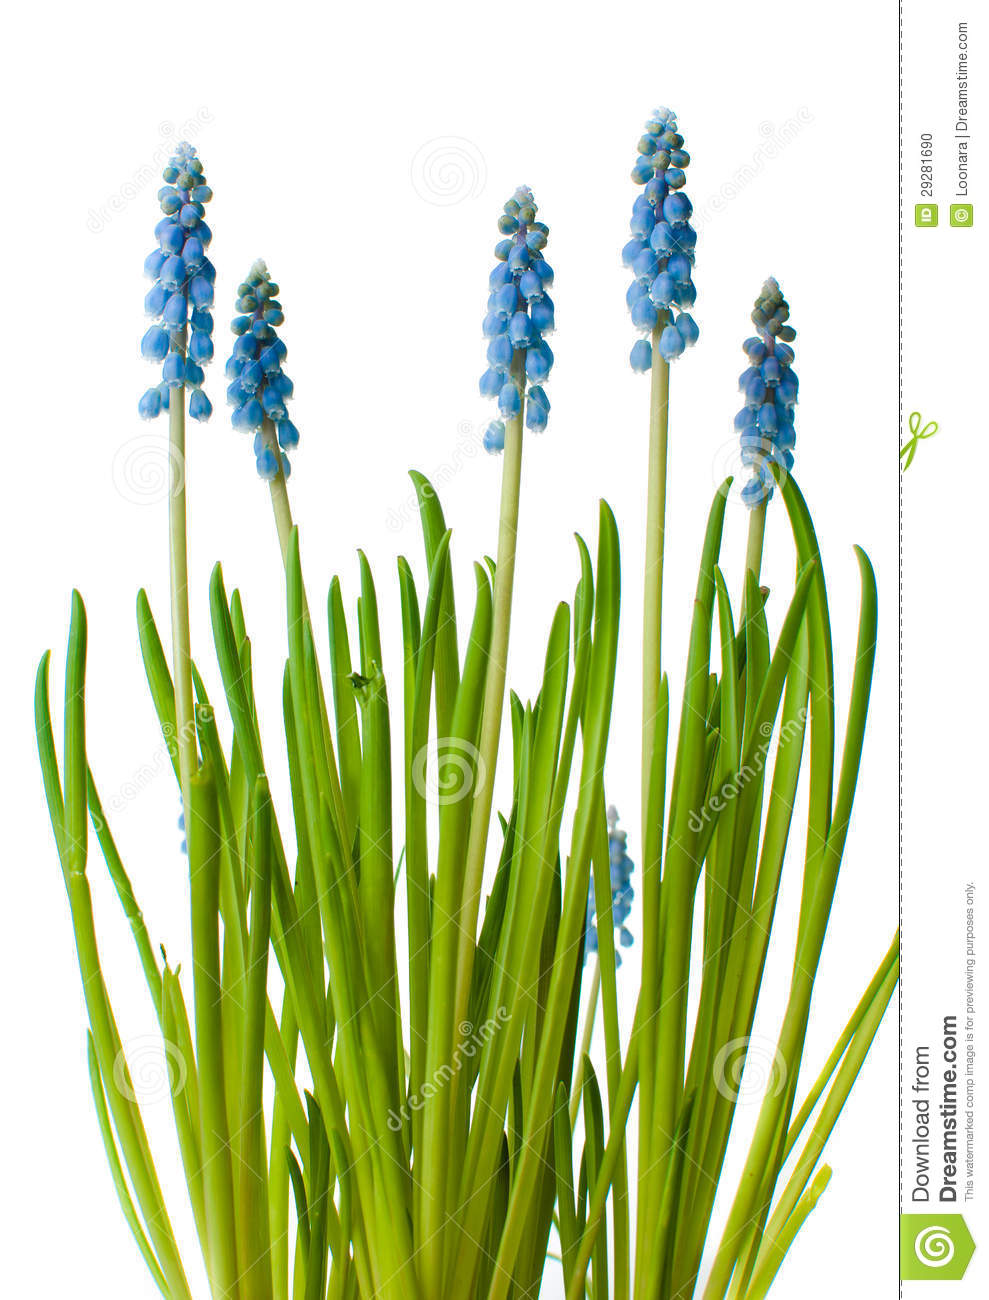 Blue Muscari Flowers, Isolated Stock Photo.